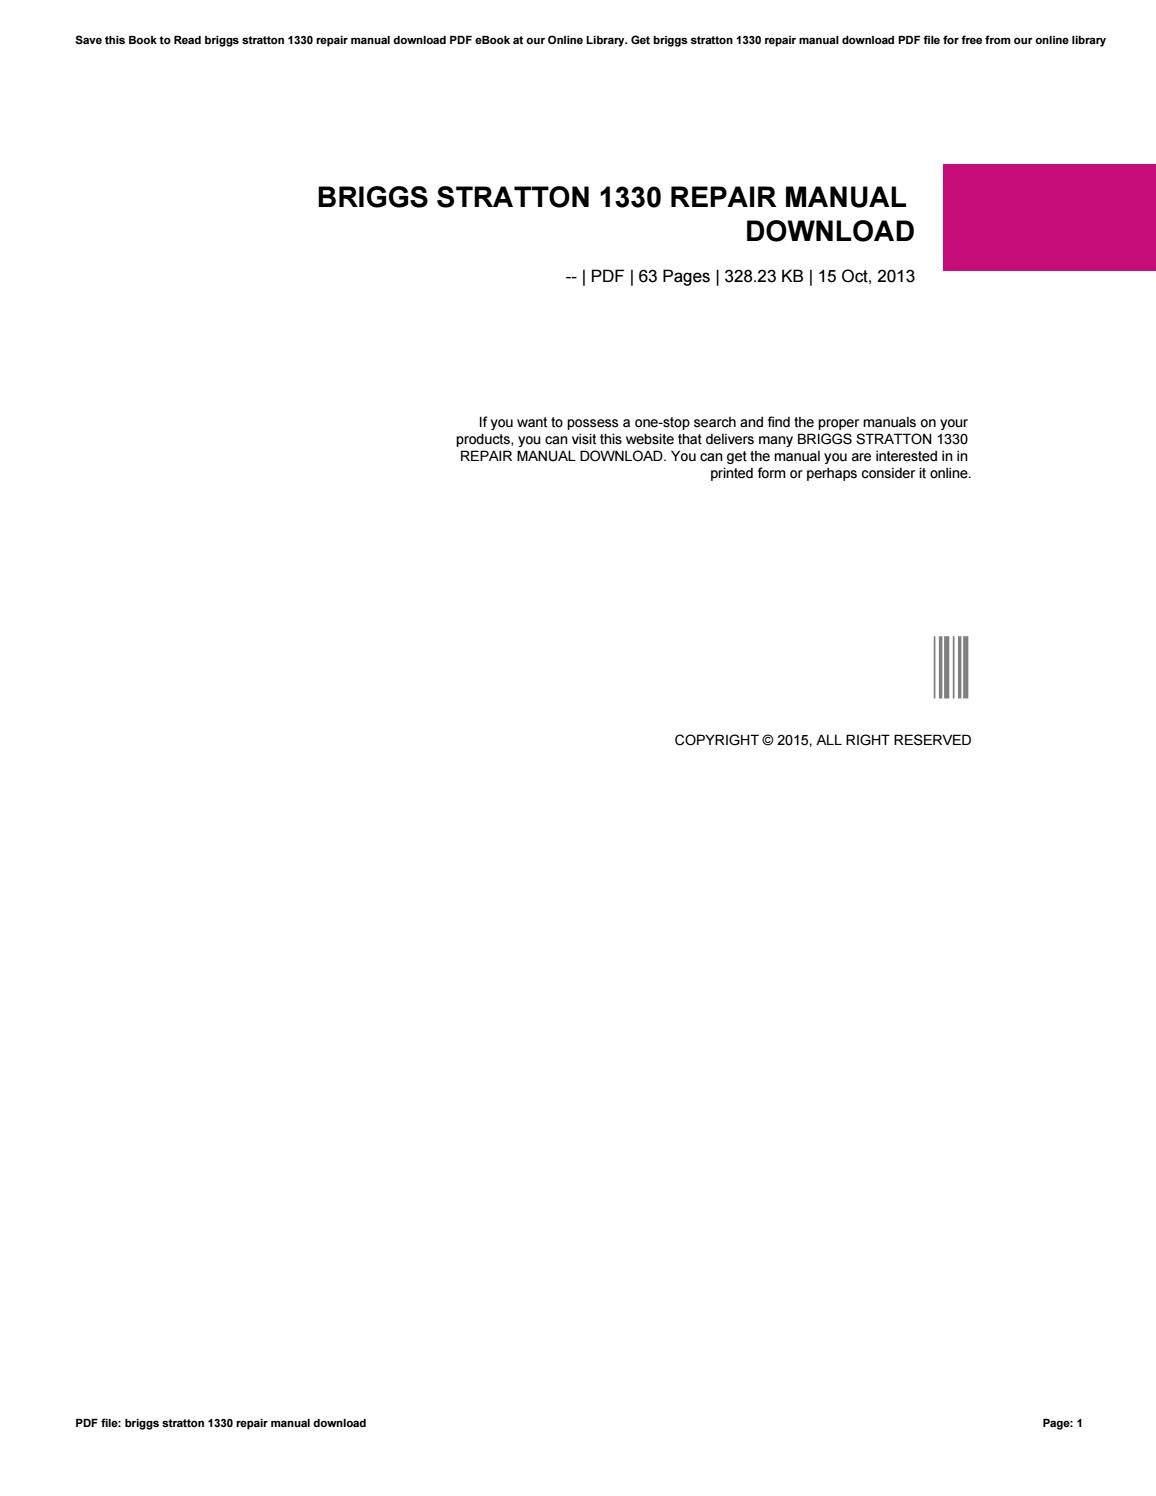 briggs stratton 1330 repair manual download by barryogorman12 issuu